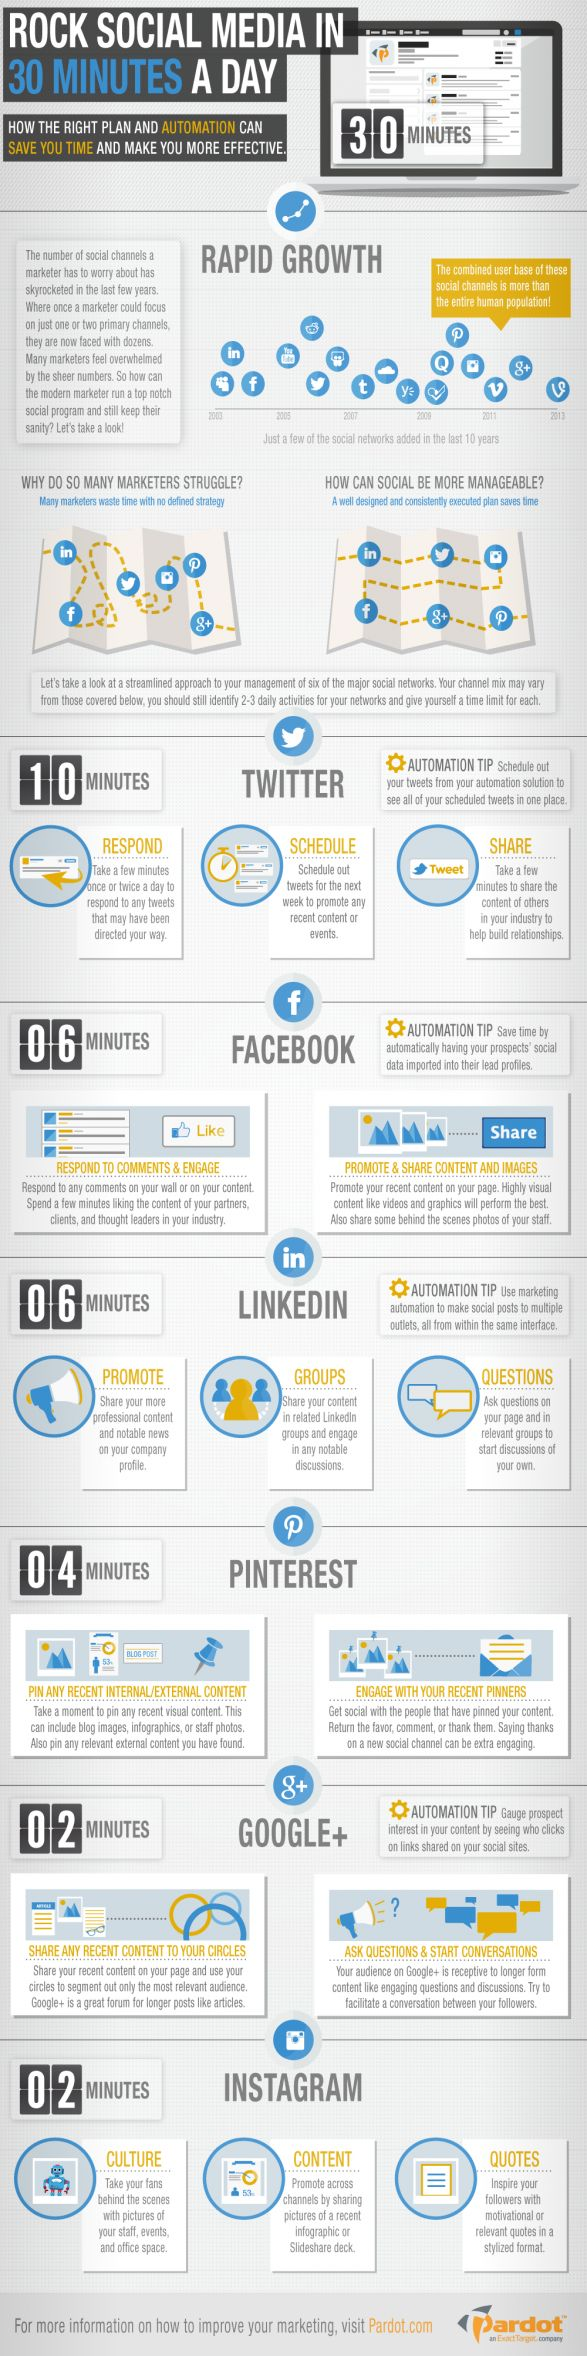 How to Rock Social Media in 30 Minutes a Day